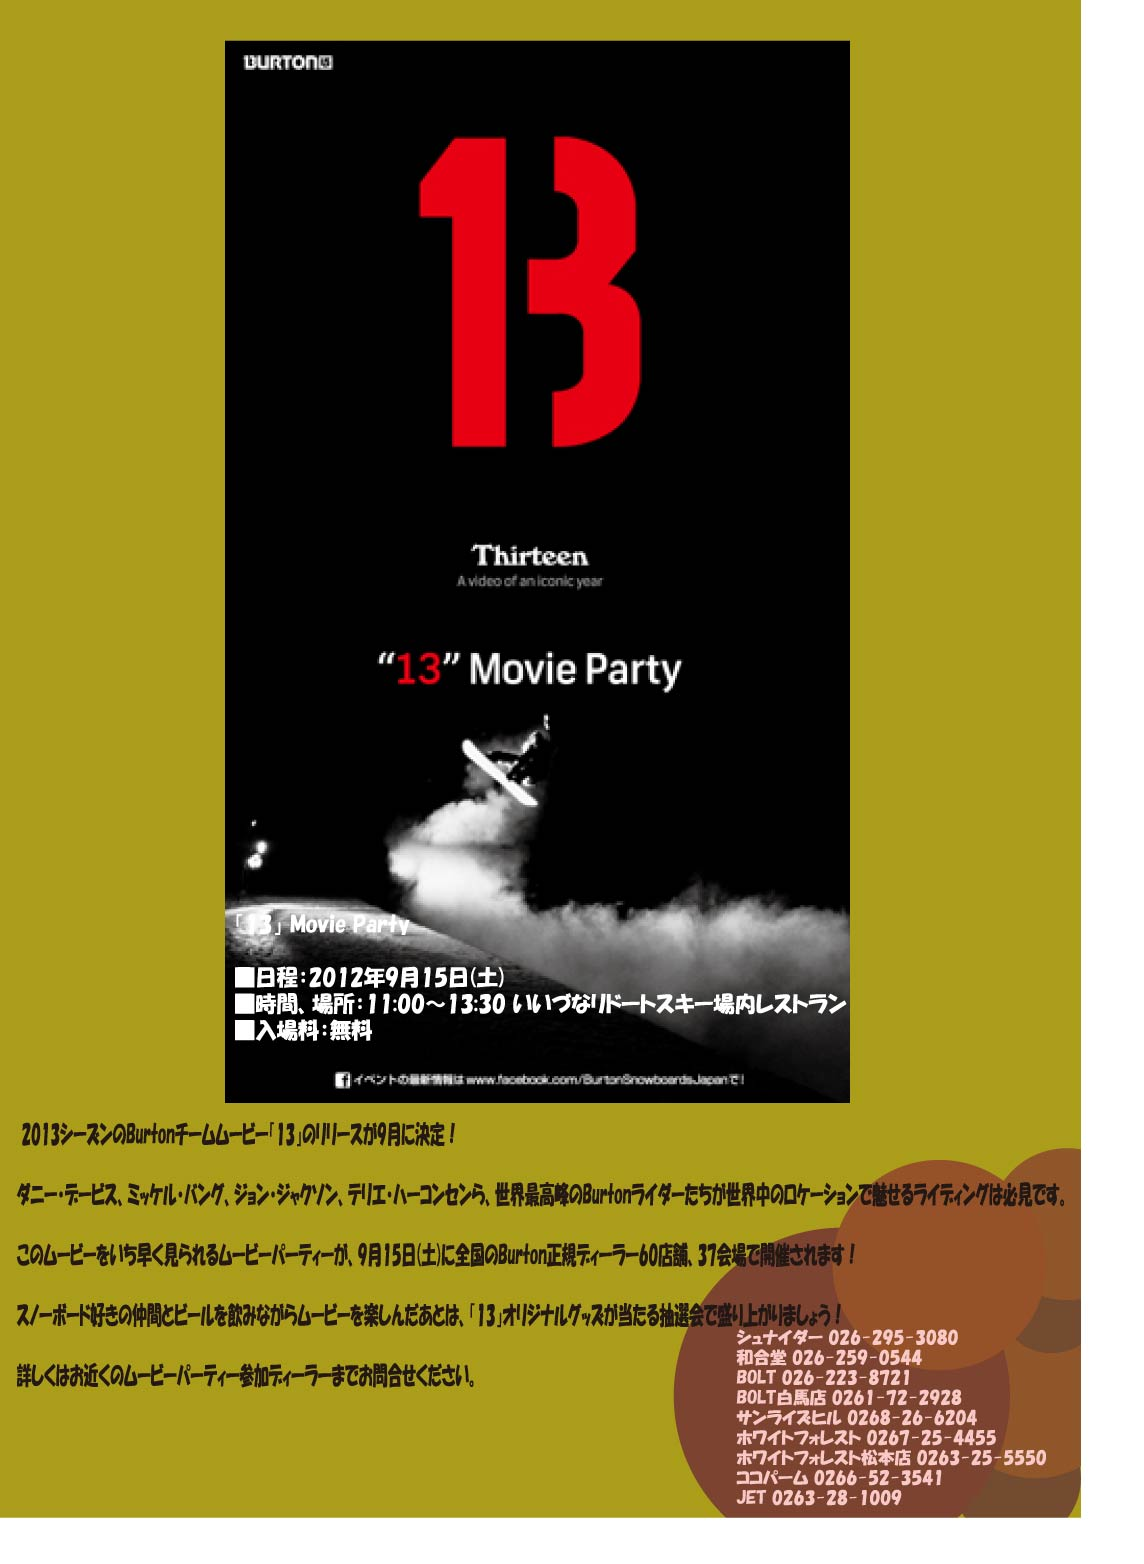 burton Movie Partyのお知らせ!_f0229217_1345313.jpg